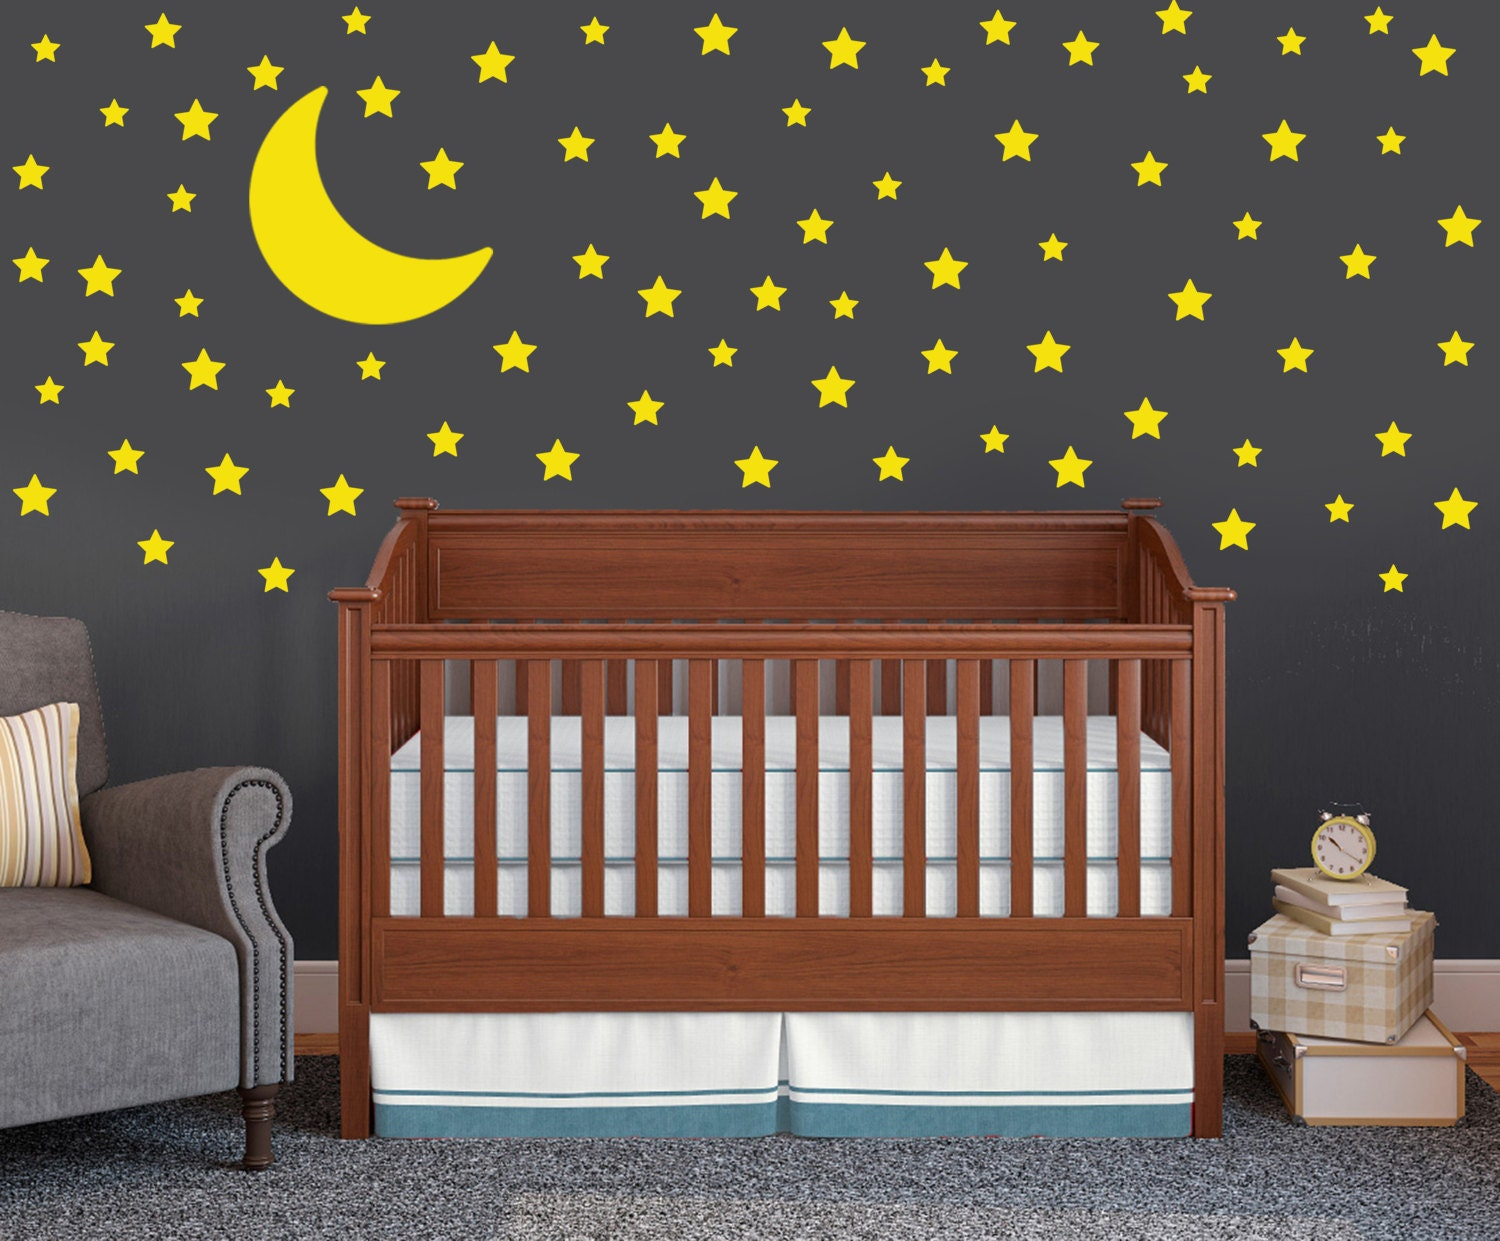 moon and stars wall decal set childrens wall decals 75. Black Bedroom Furniture Sets. Home Design Ideas